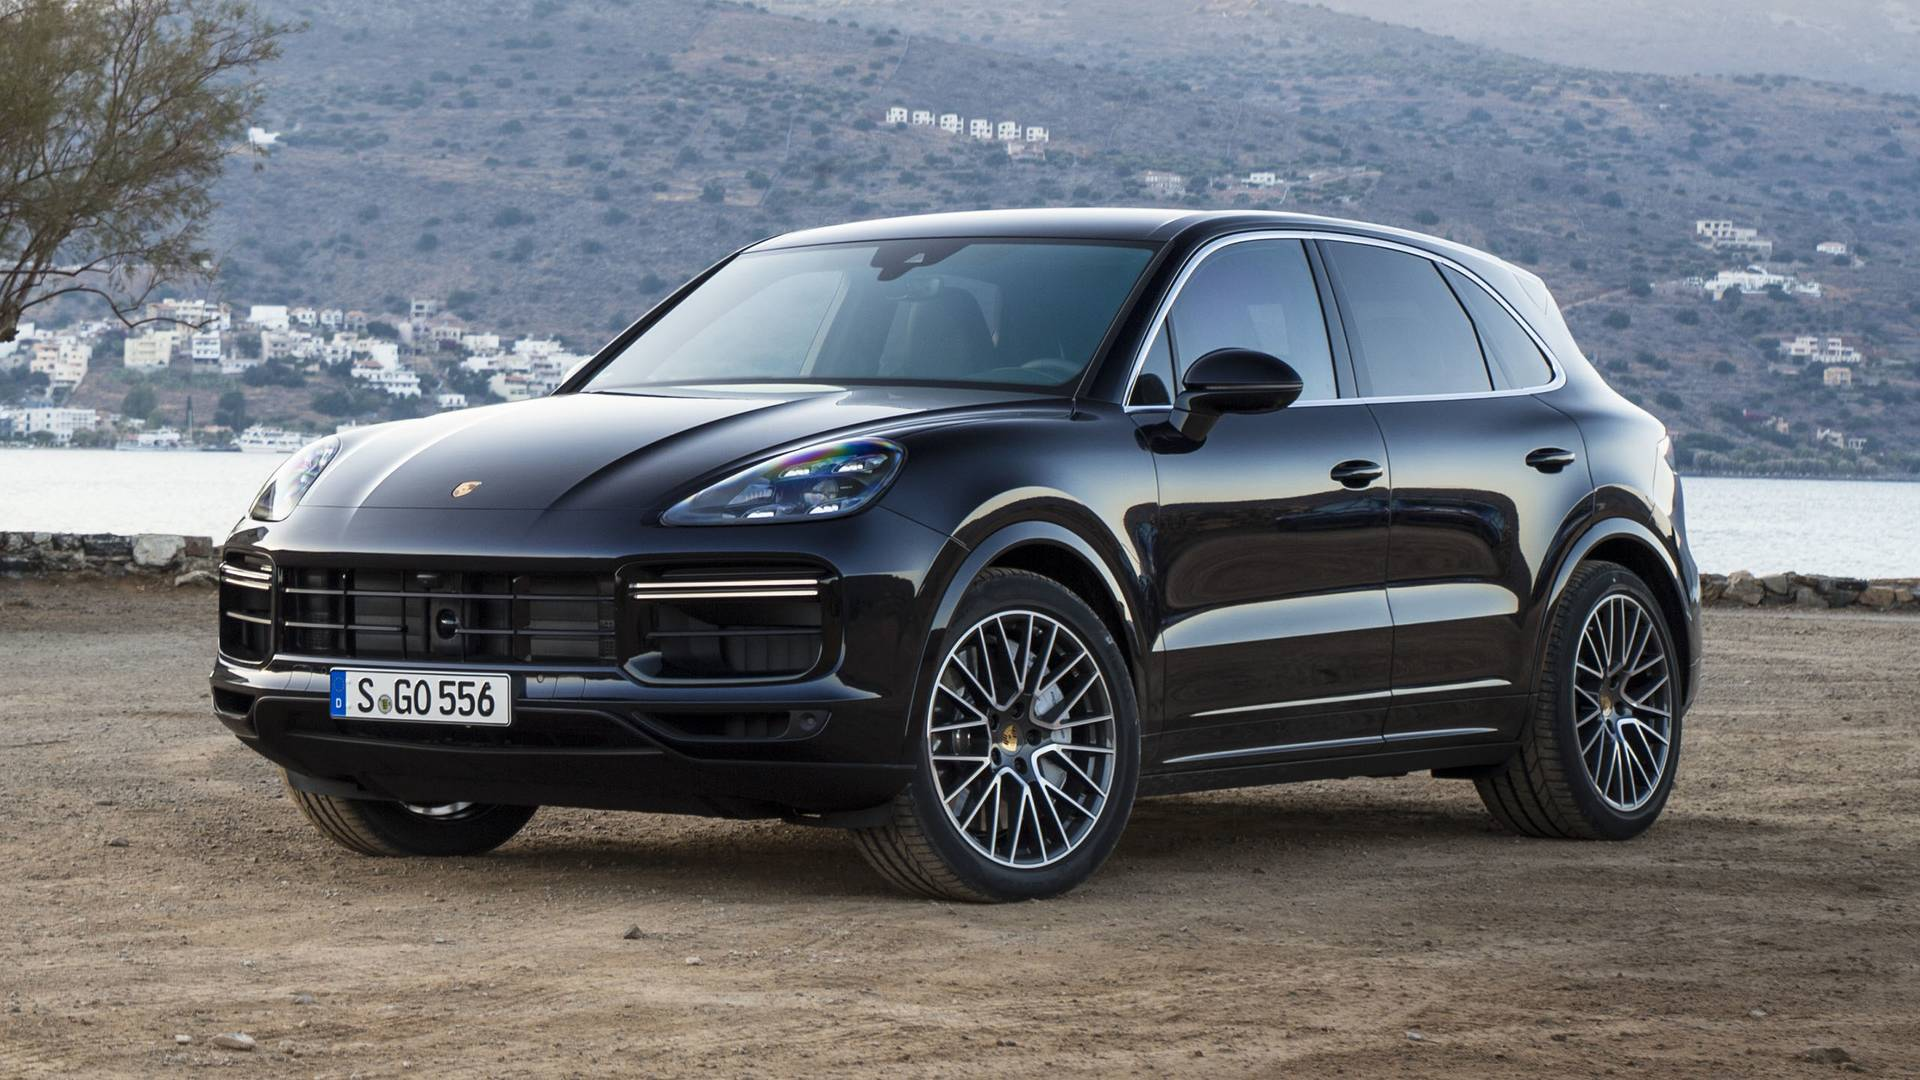 Porsche Video Demonstrates Why The New Cayenne Is A Practical SUV